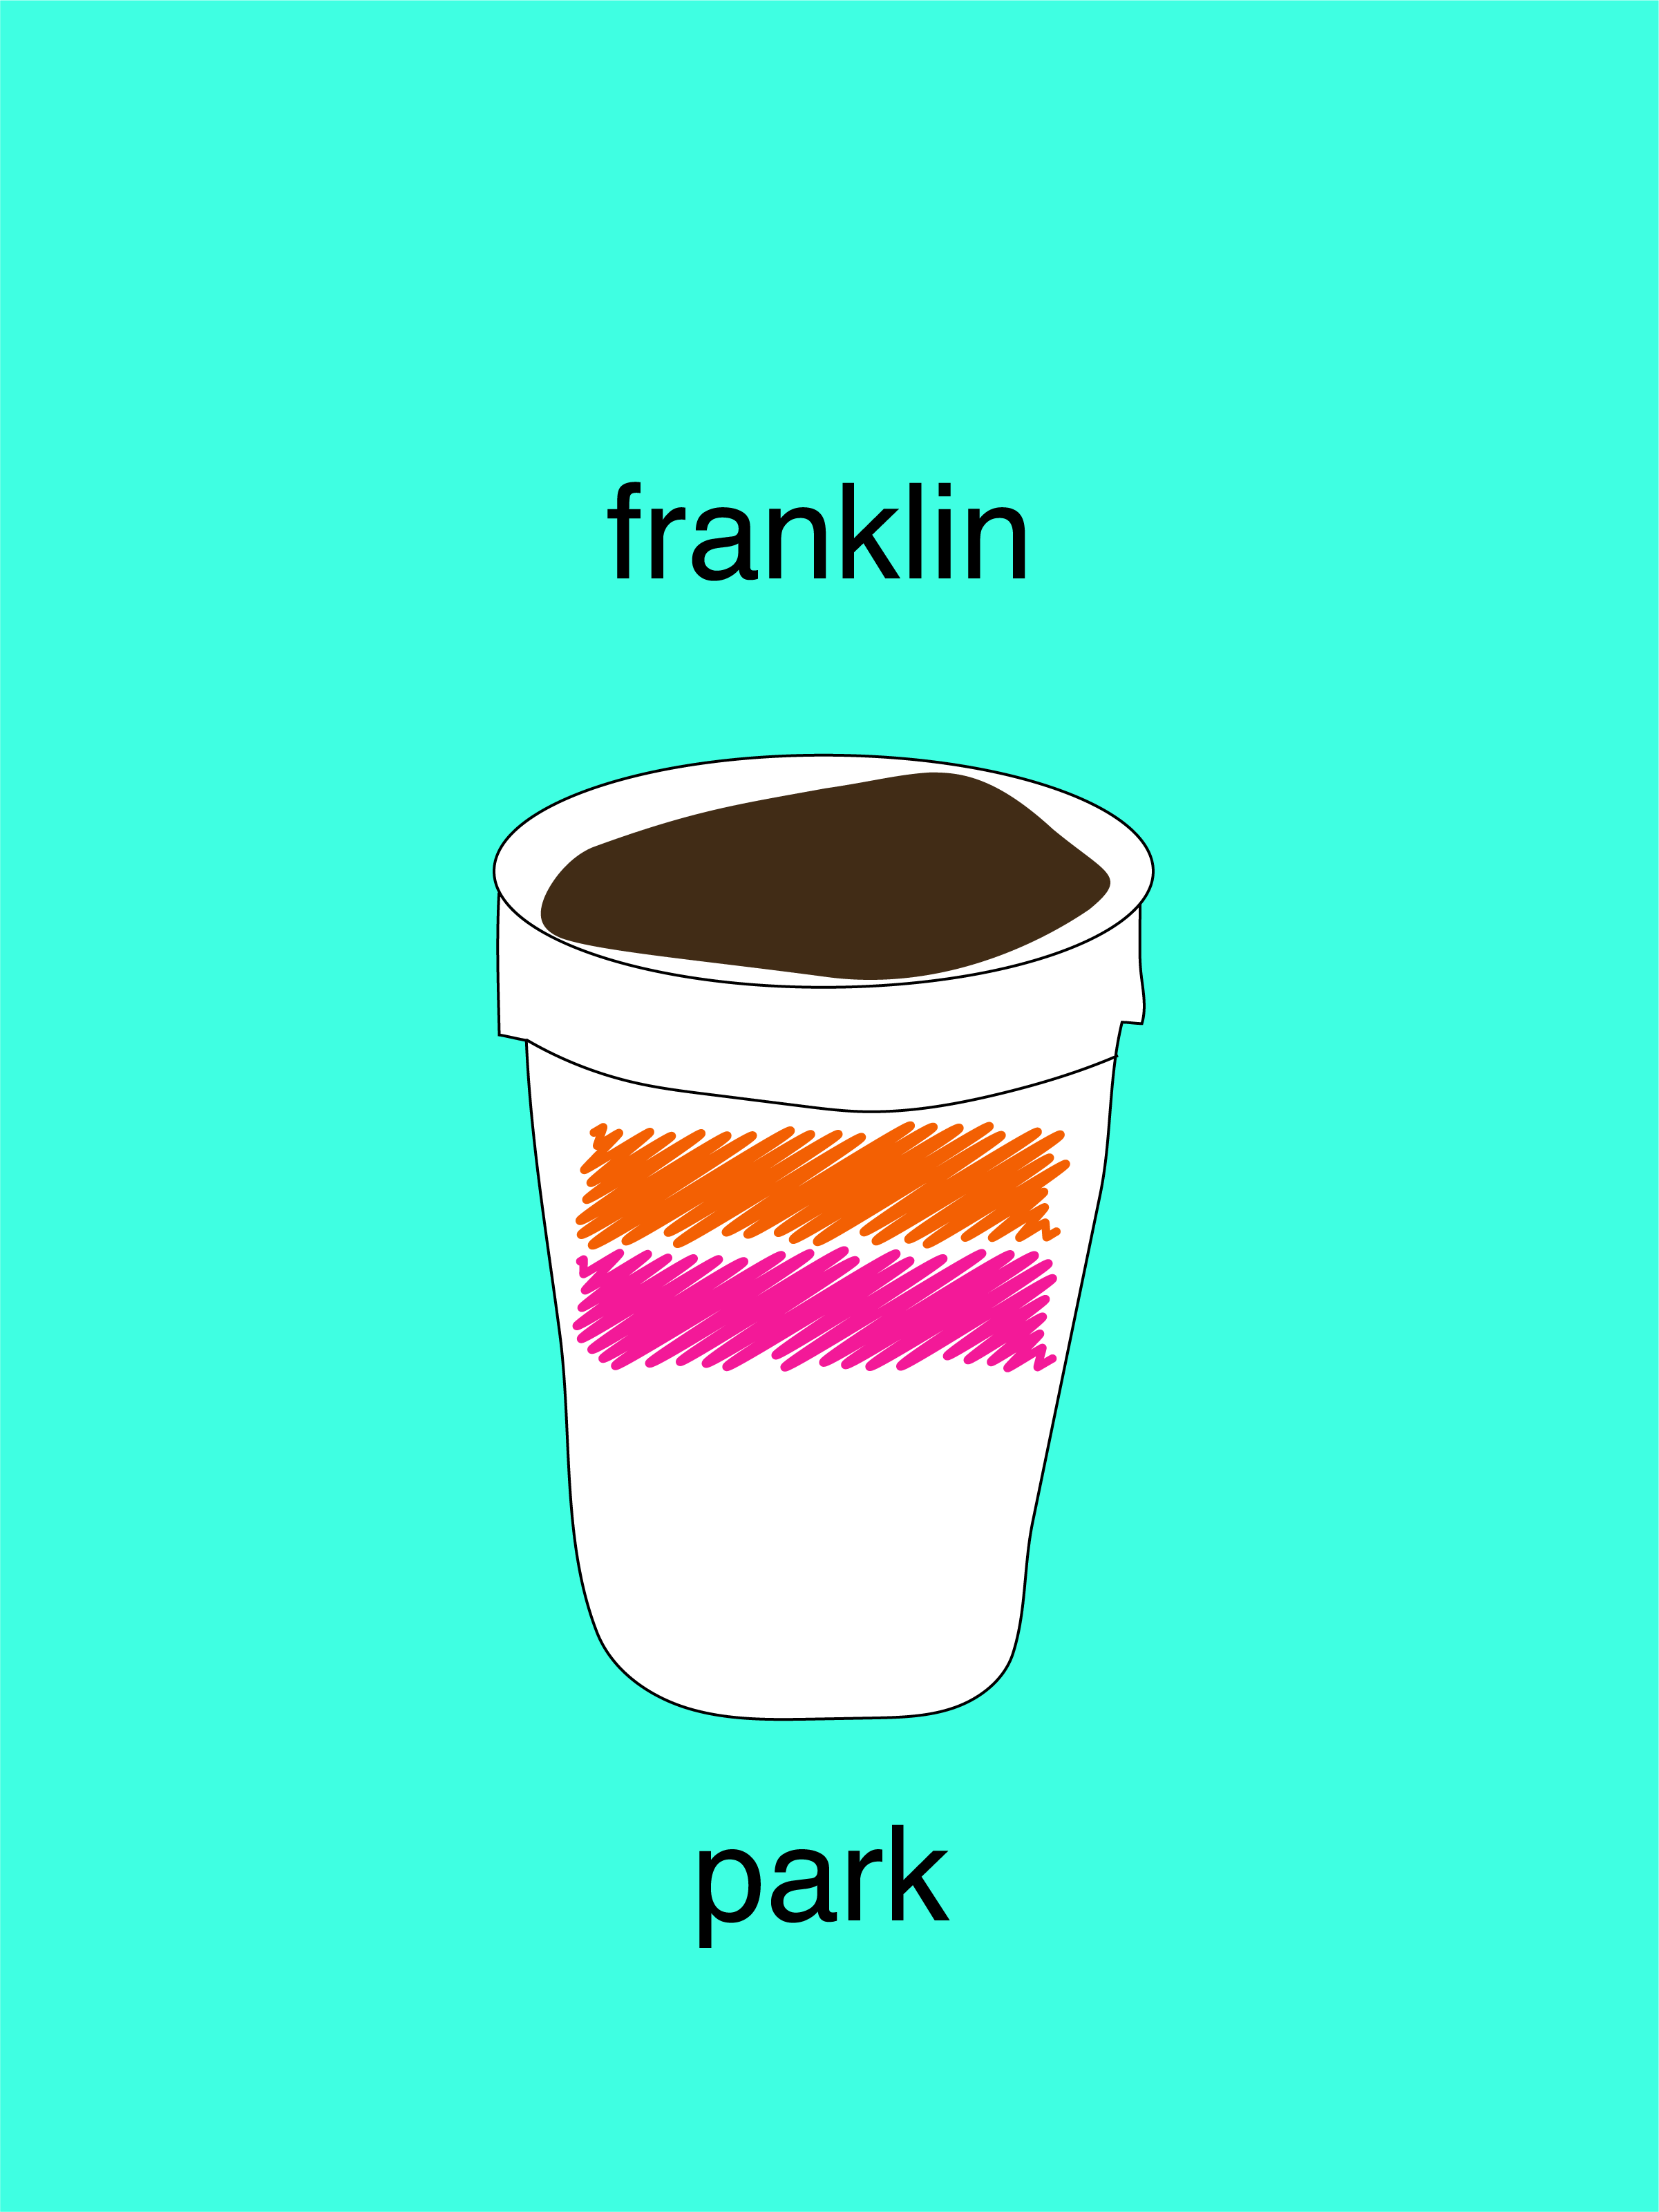 fpark@4x.png